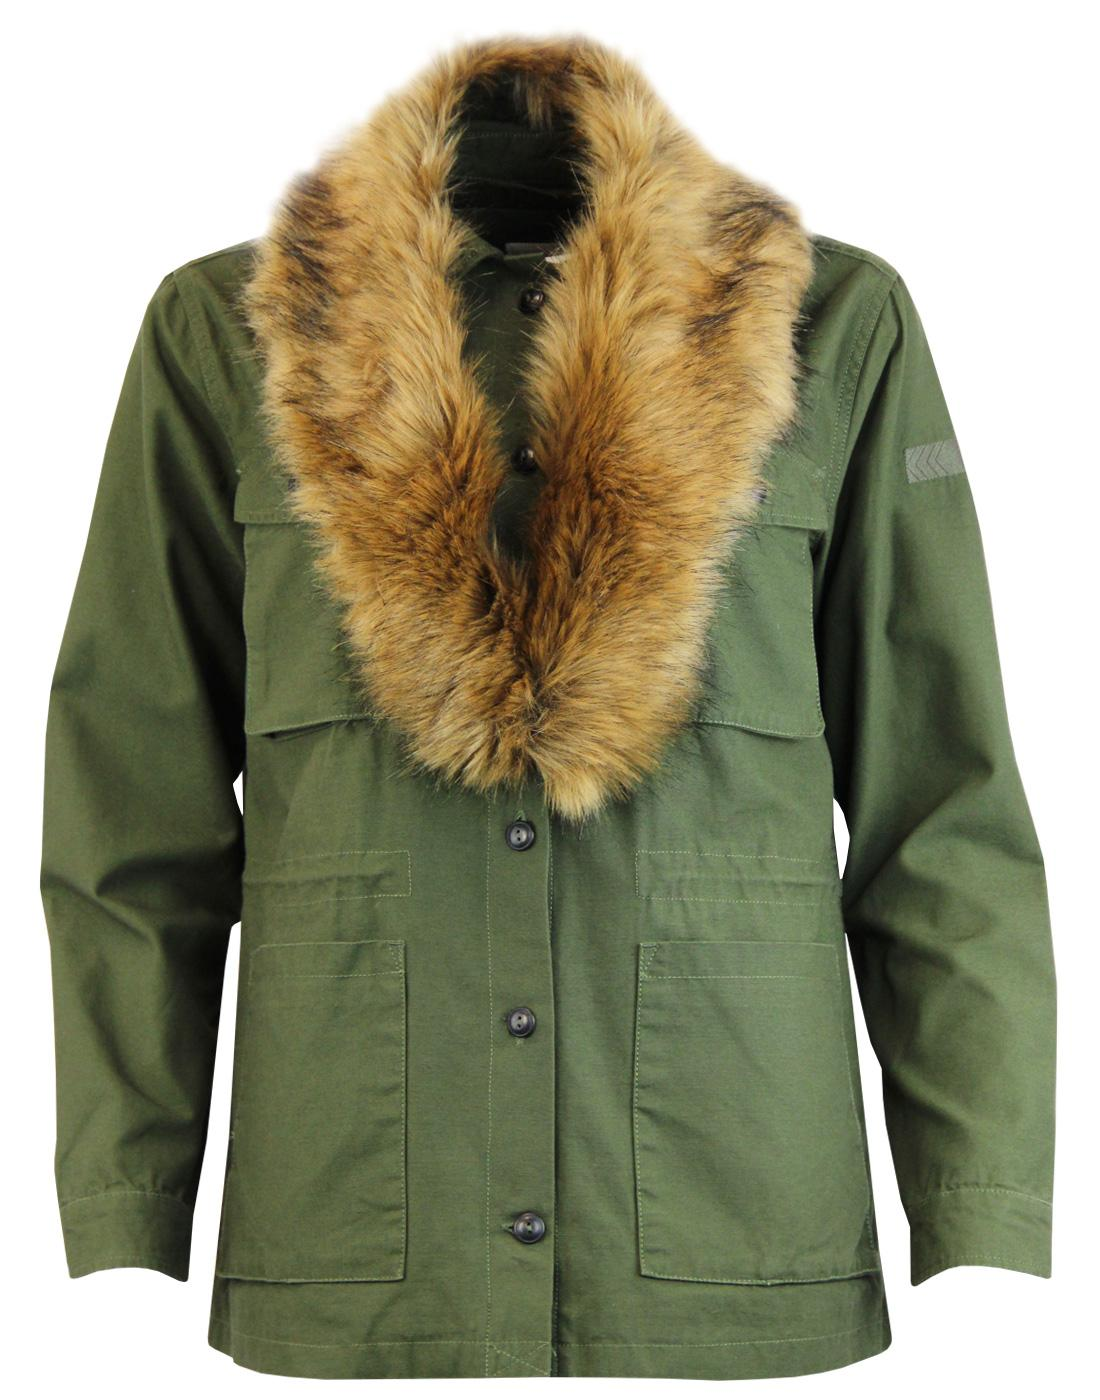 LEE Retro Fur Trimmed Button Up Military Jacket